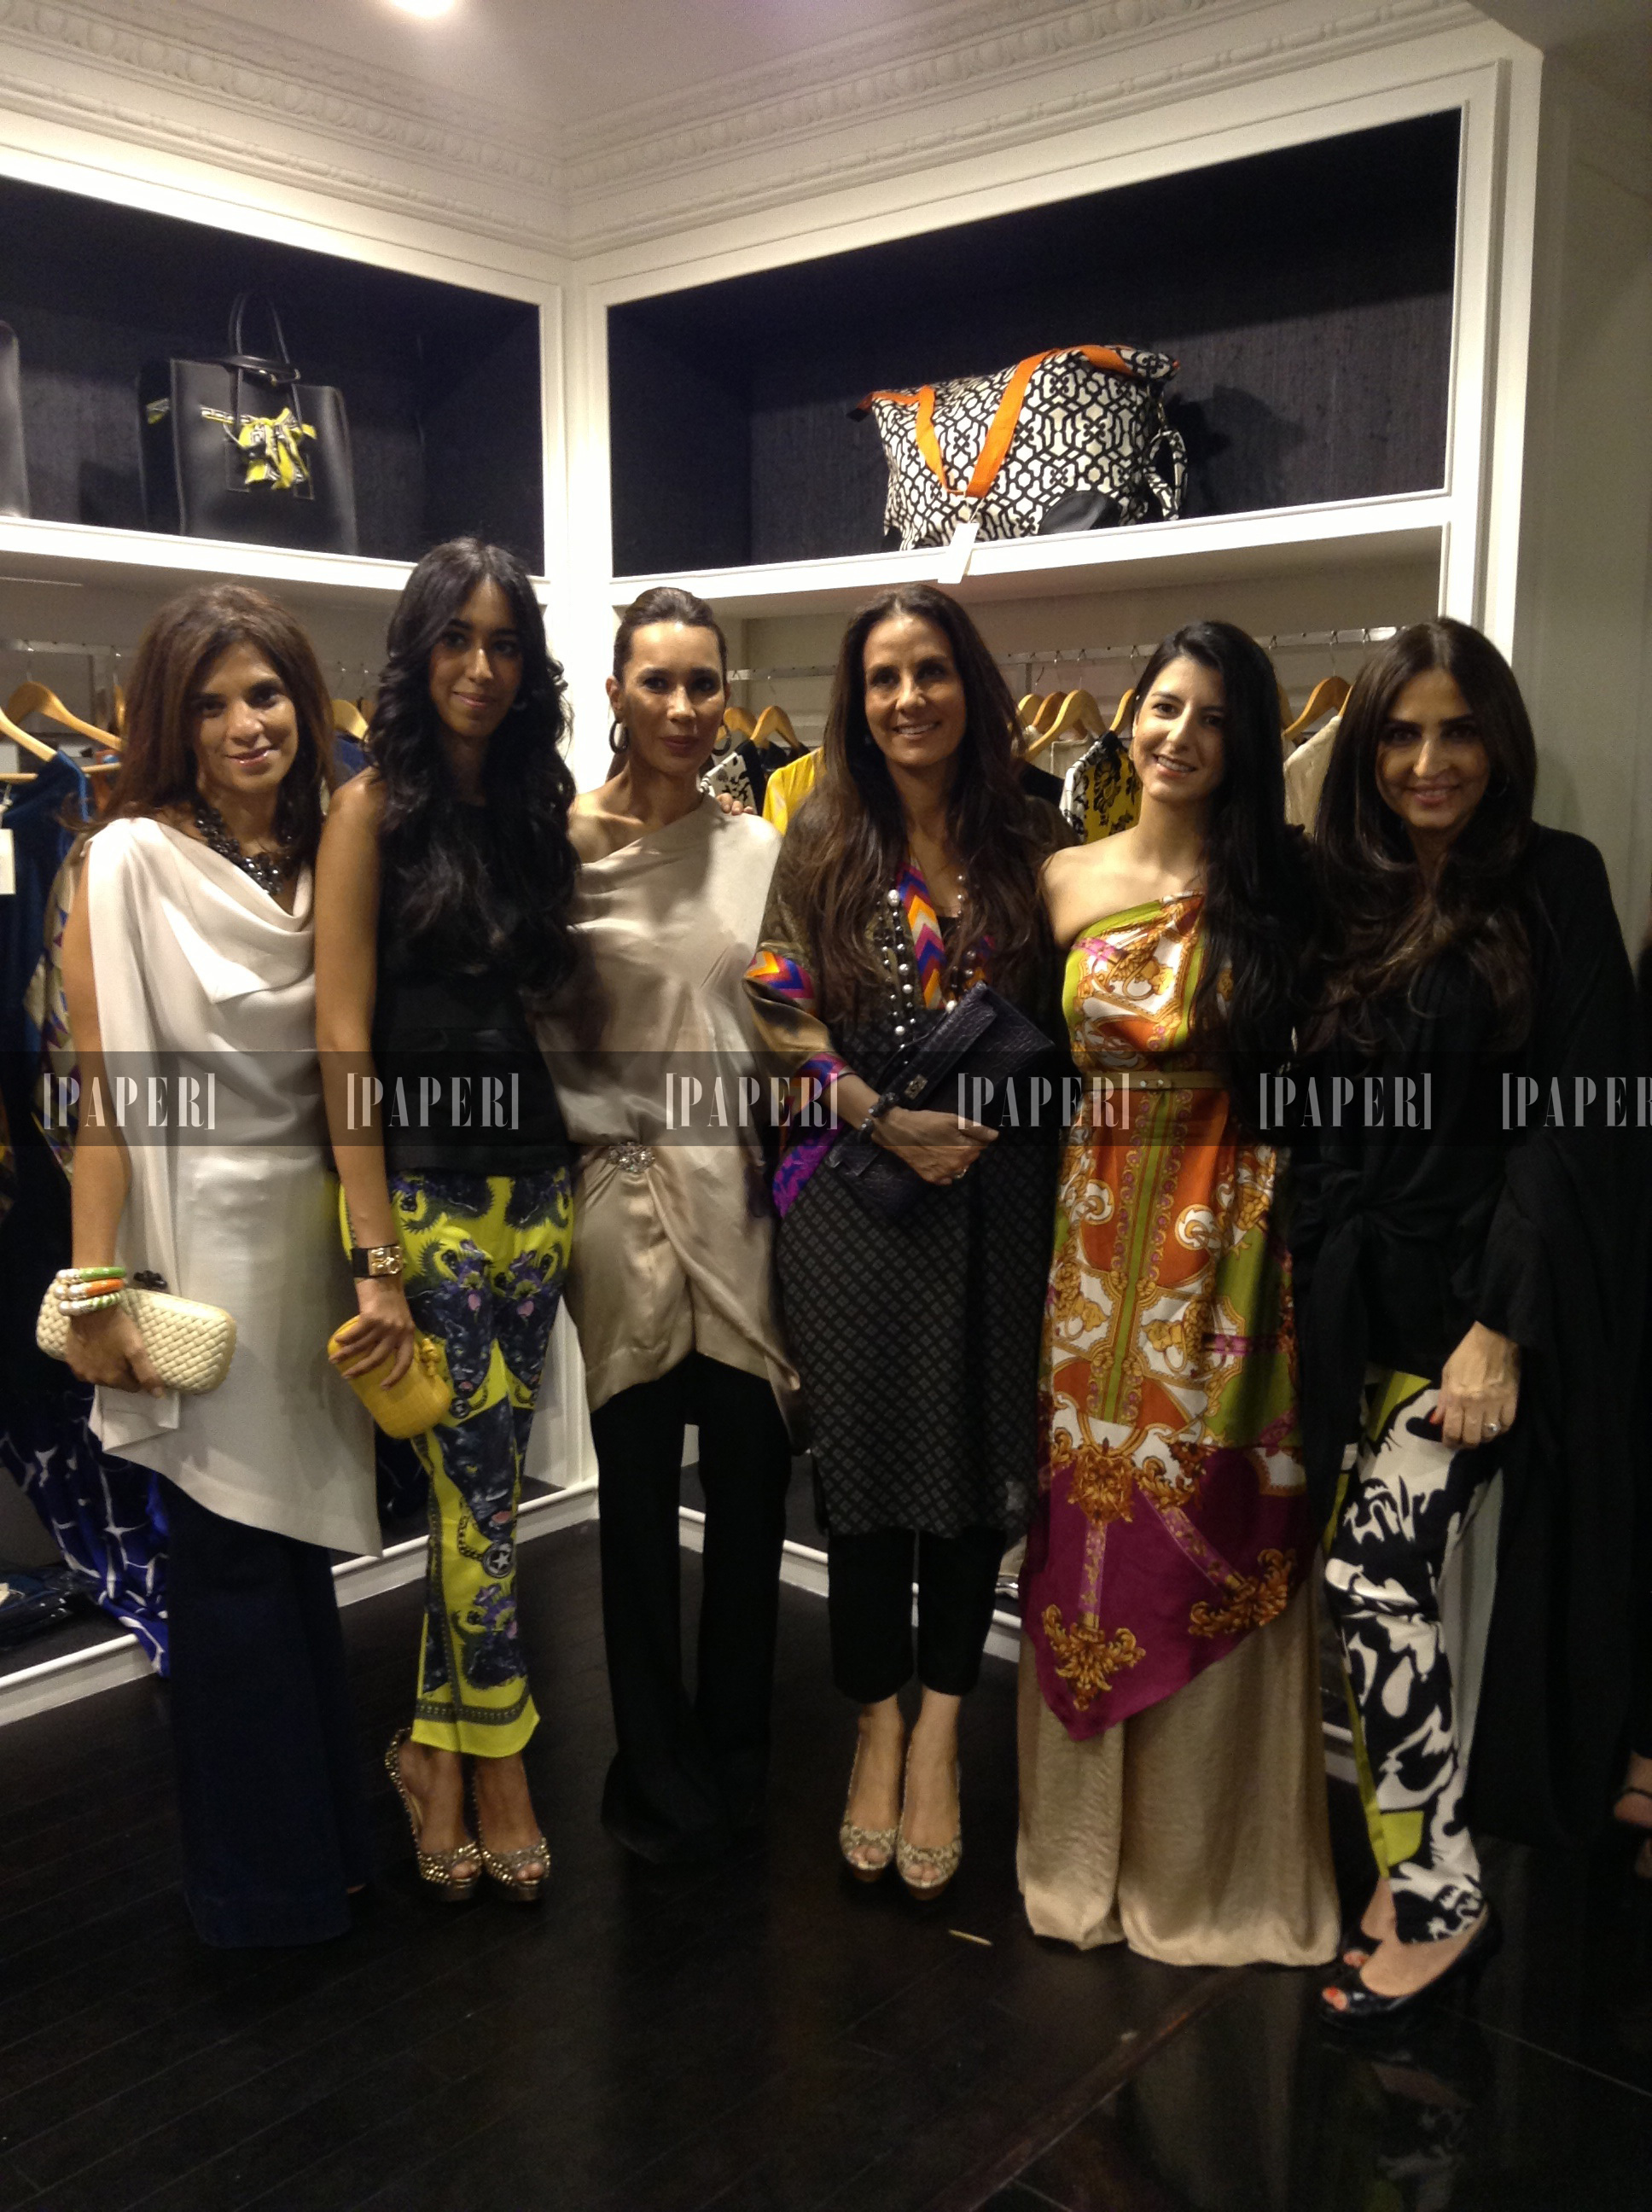 """01ac41b93f Speaking about the Lahore store launch, designer Sana Hashwani said; """"At Sana  Safinaz, we feel that our brand's continued success is largely attributable  to ..."""